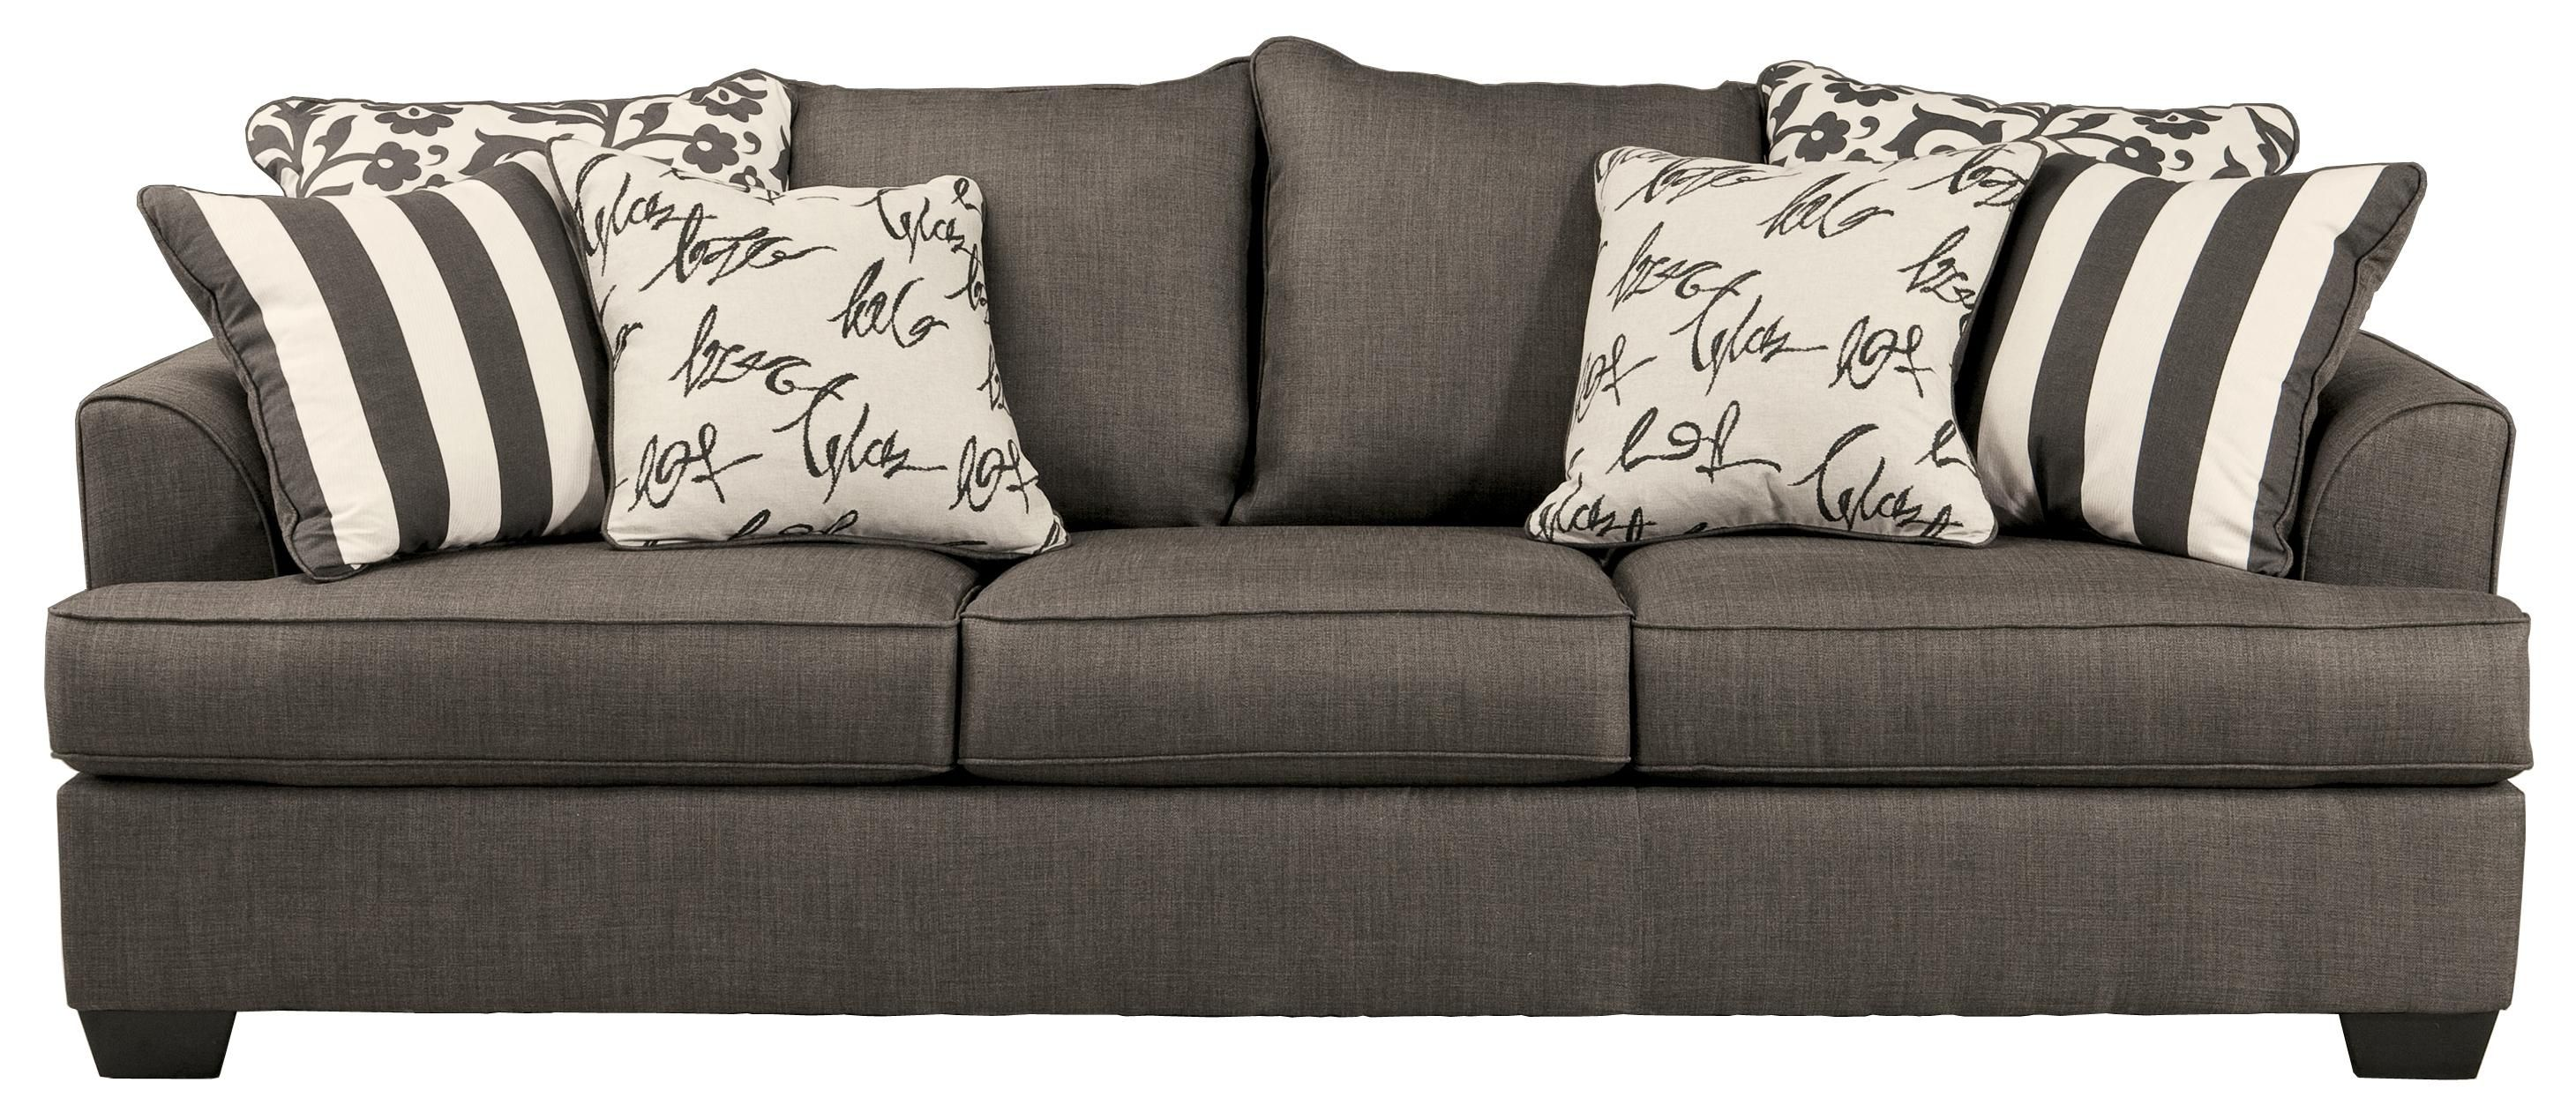 levon charcoal queen sofa sleeper with memory foam mattress by rh pinterest com